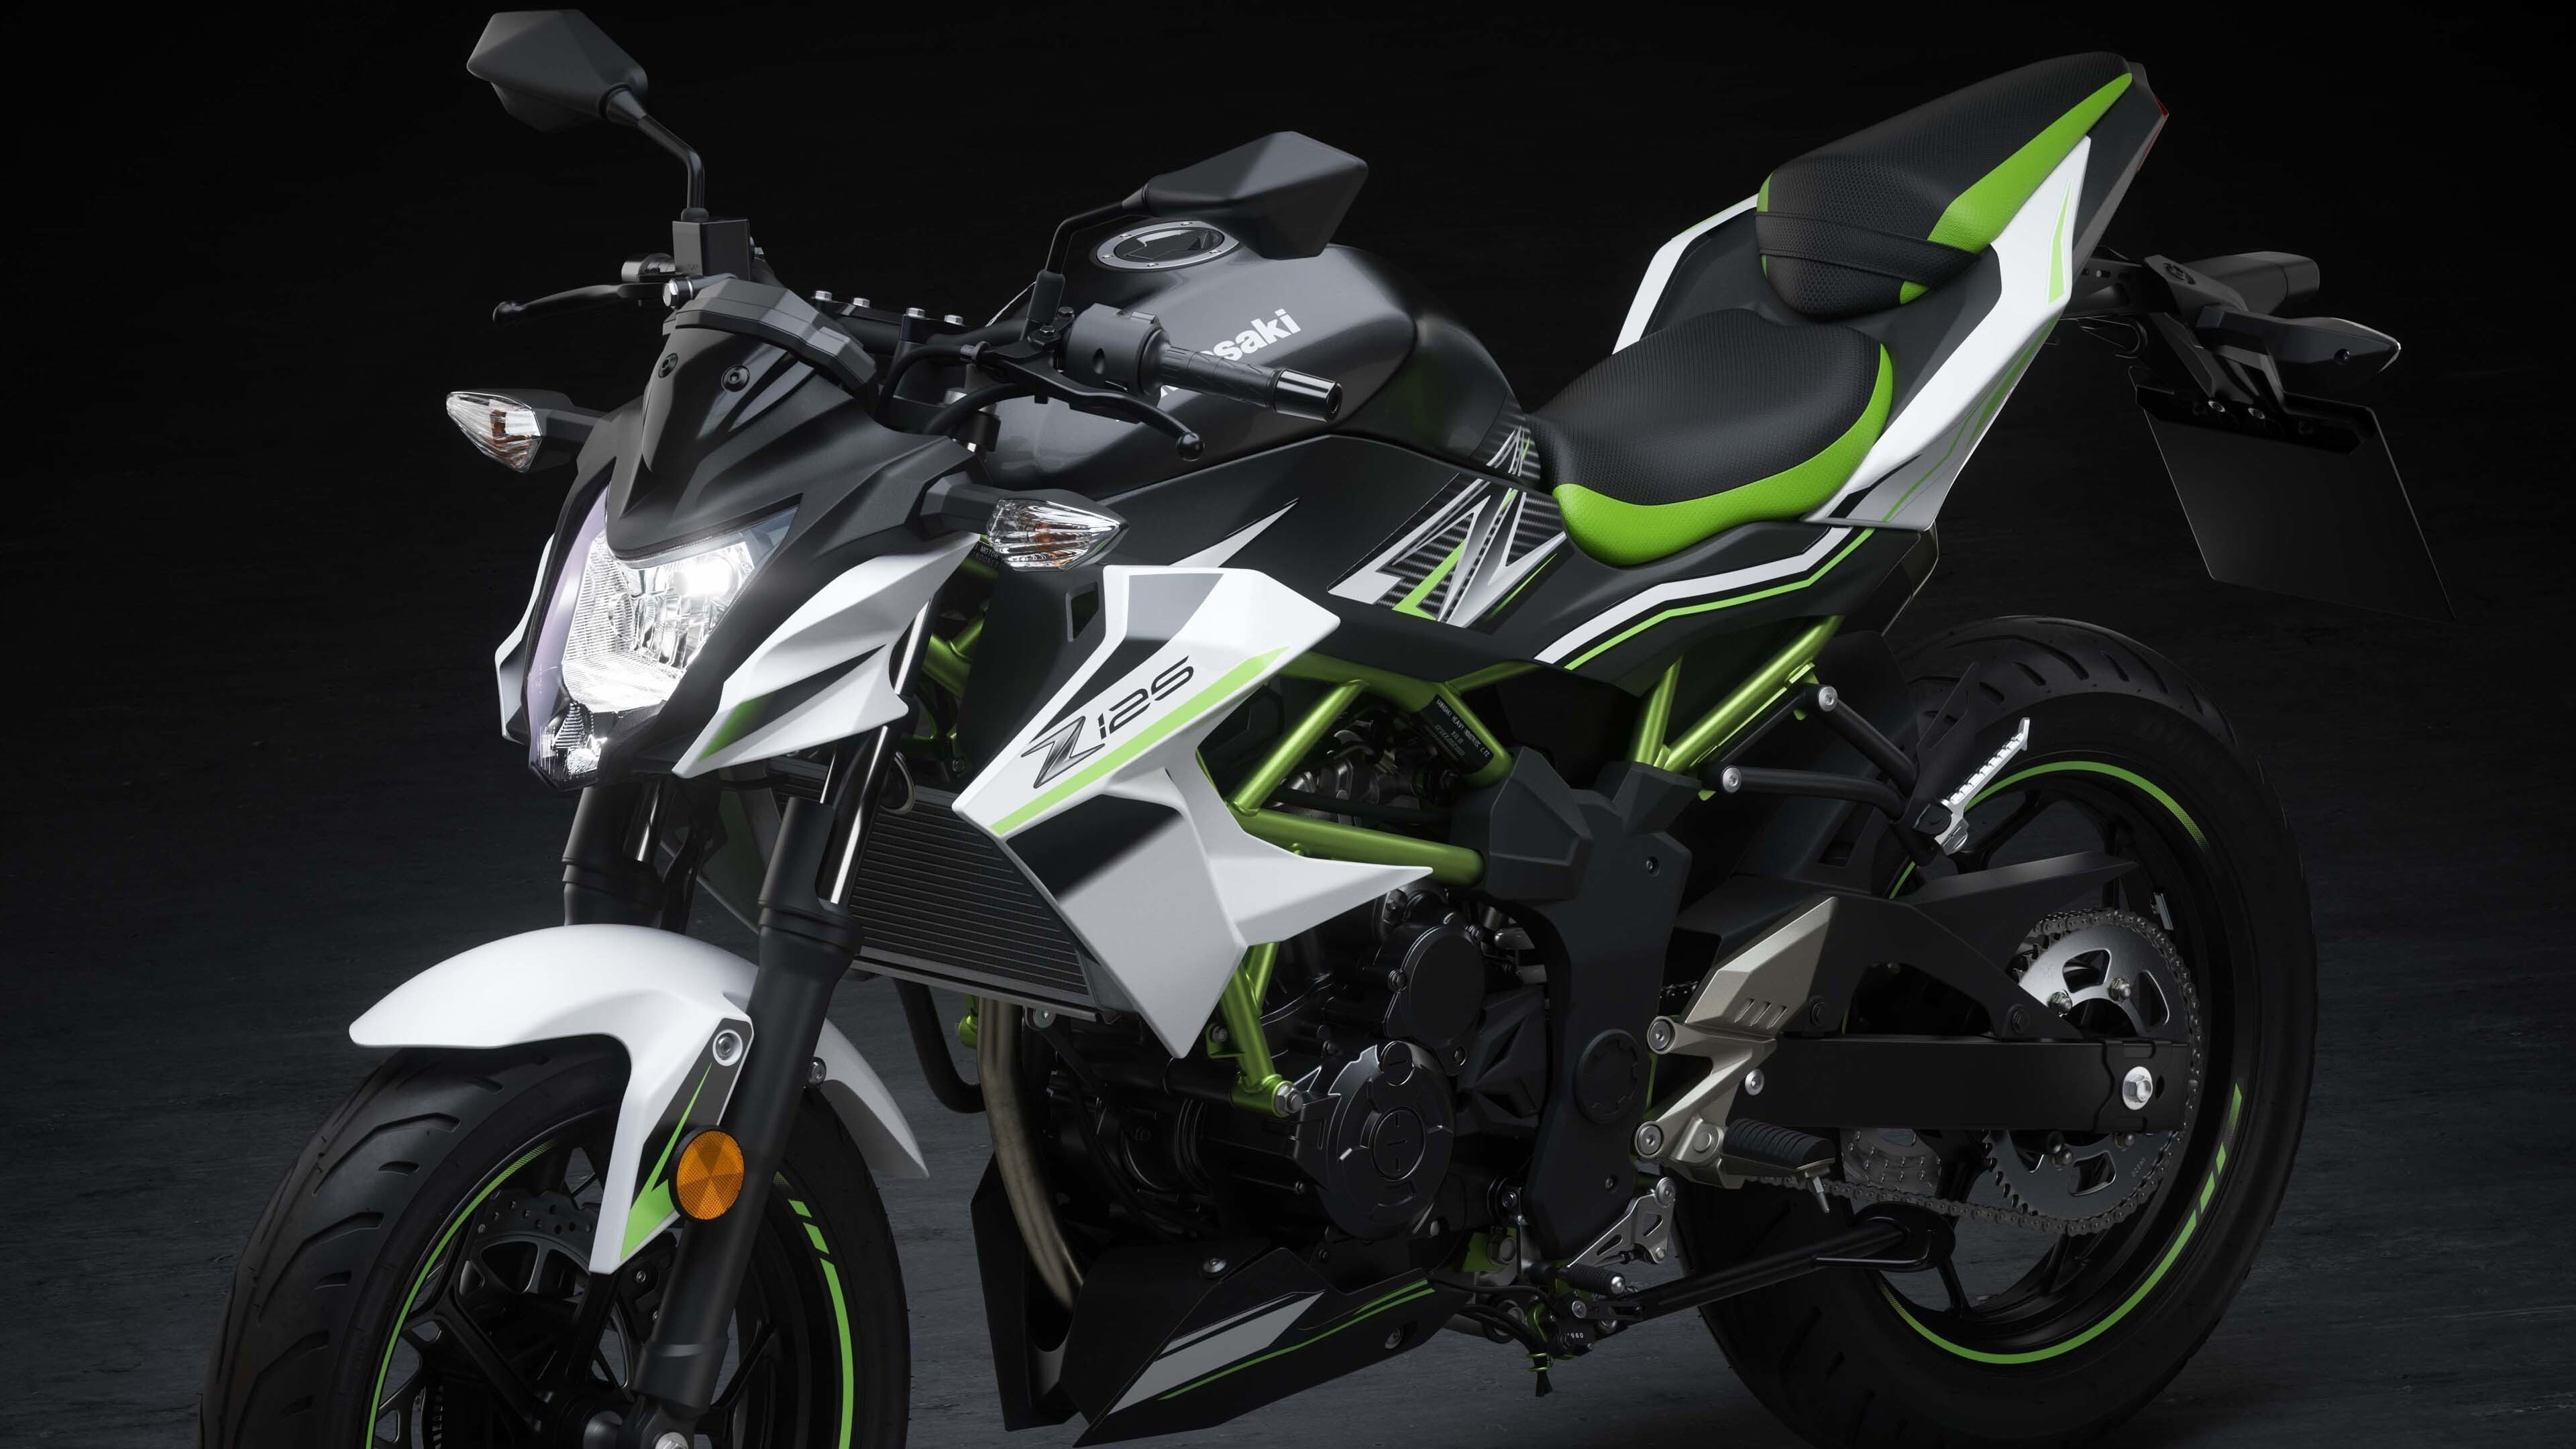 2019 Kawasaki Z125 4K Bike Wallpaper